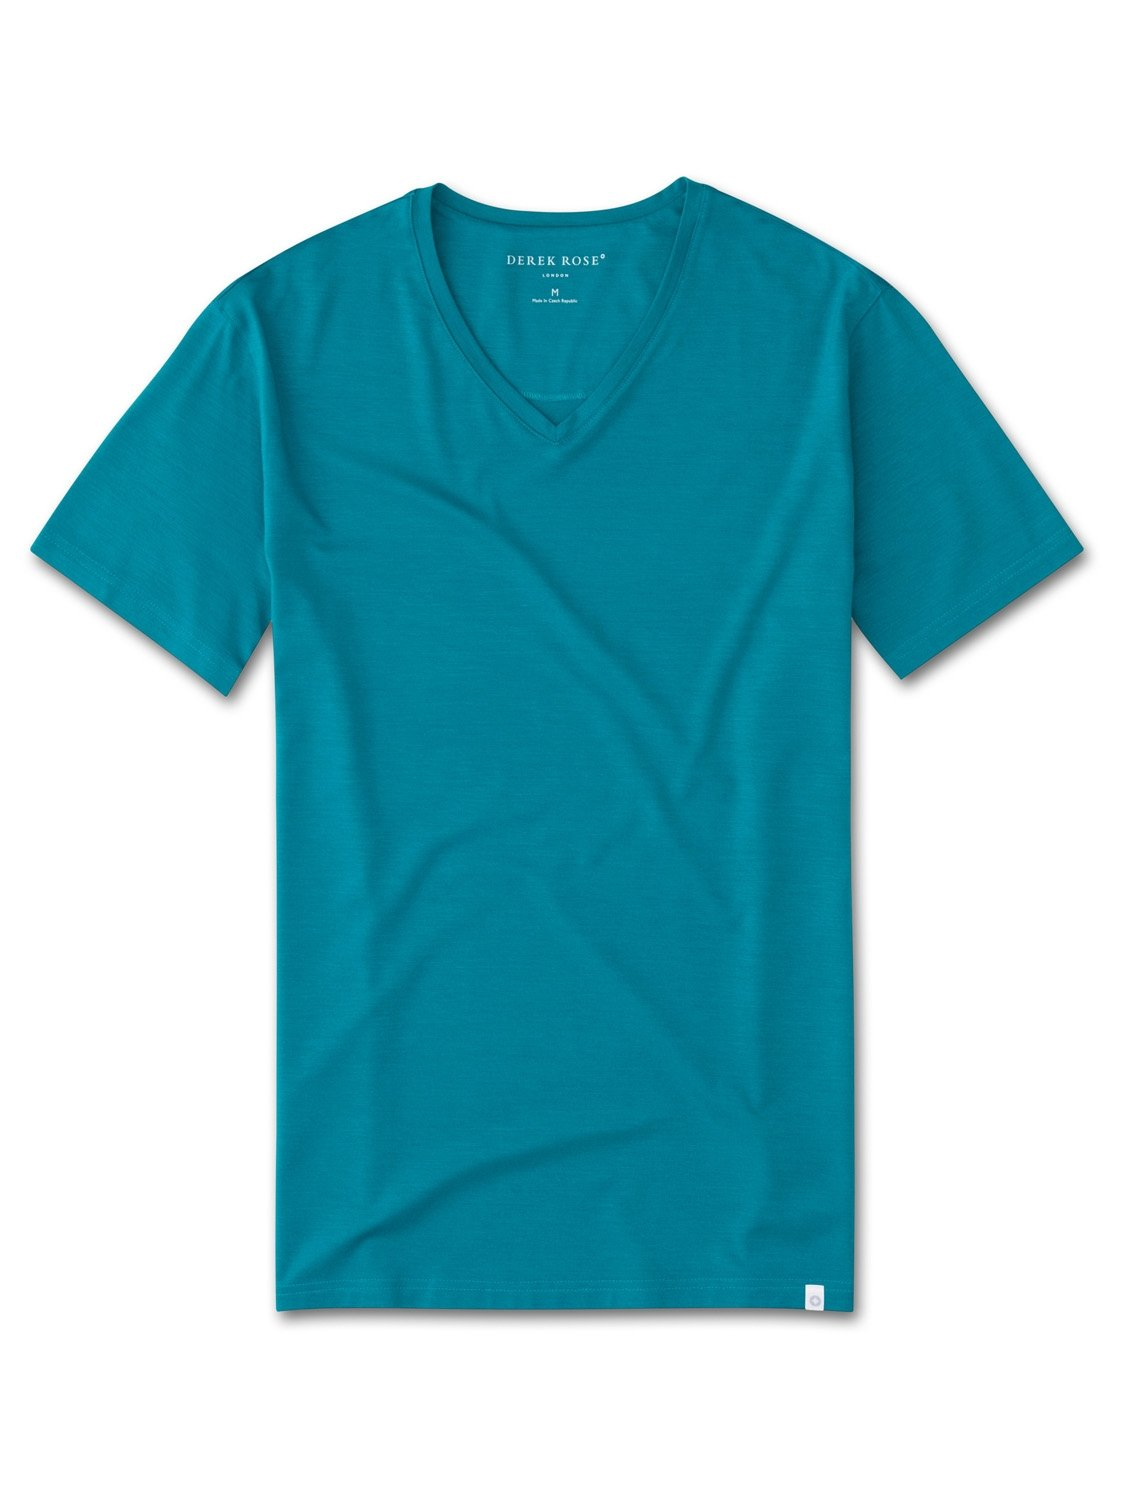 Men's Short Sleeve V-Neck T-Shirt Basel 4 Micro Modal Stretch Teal